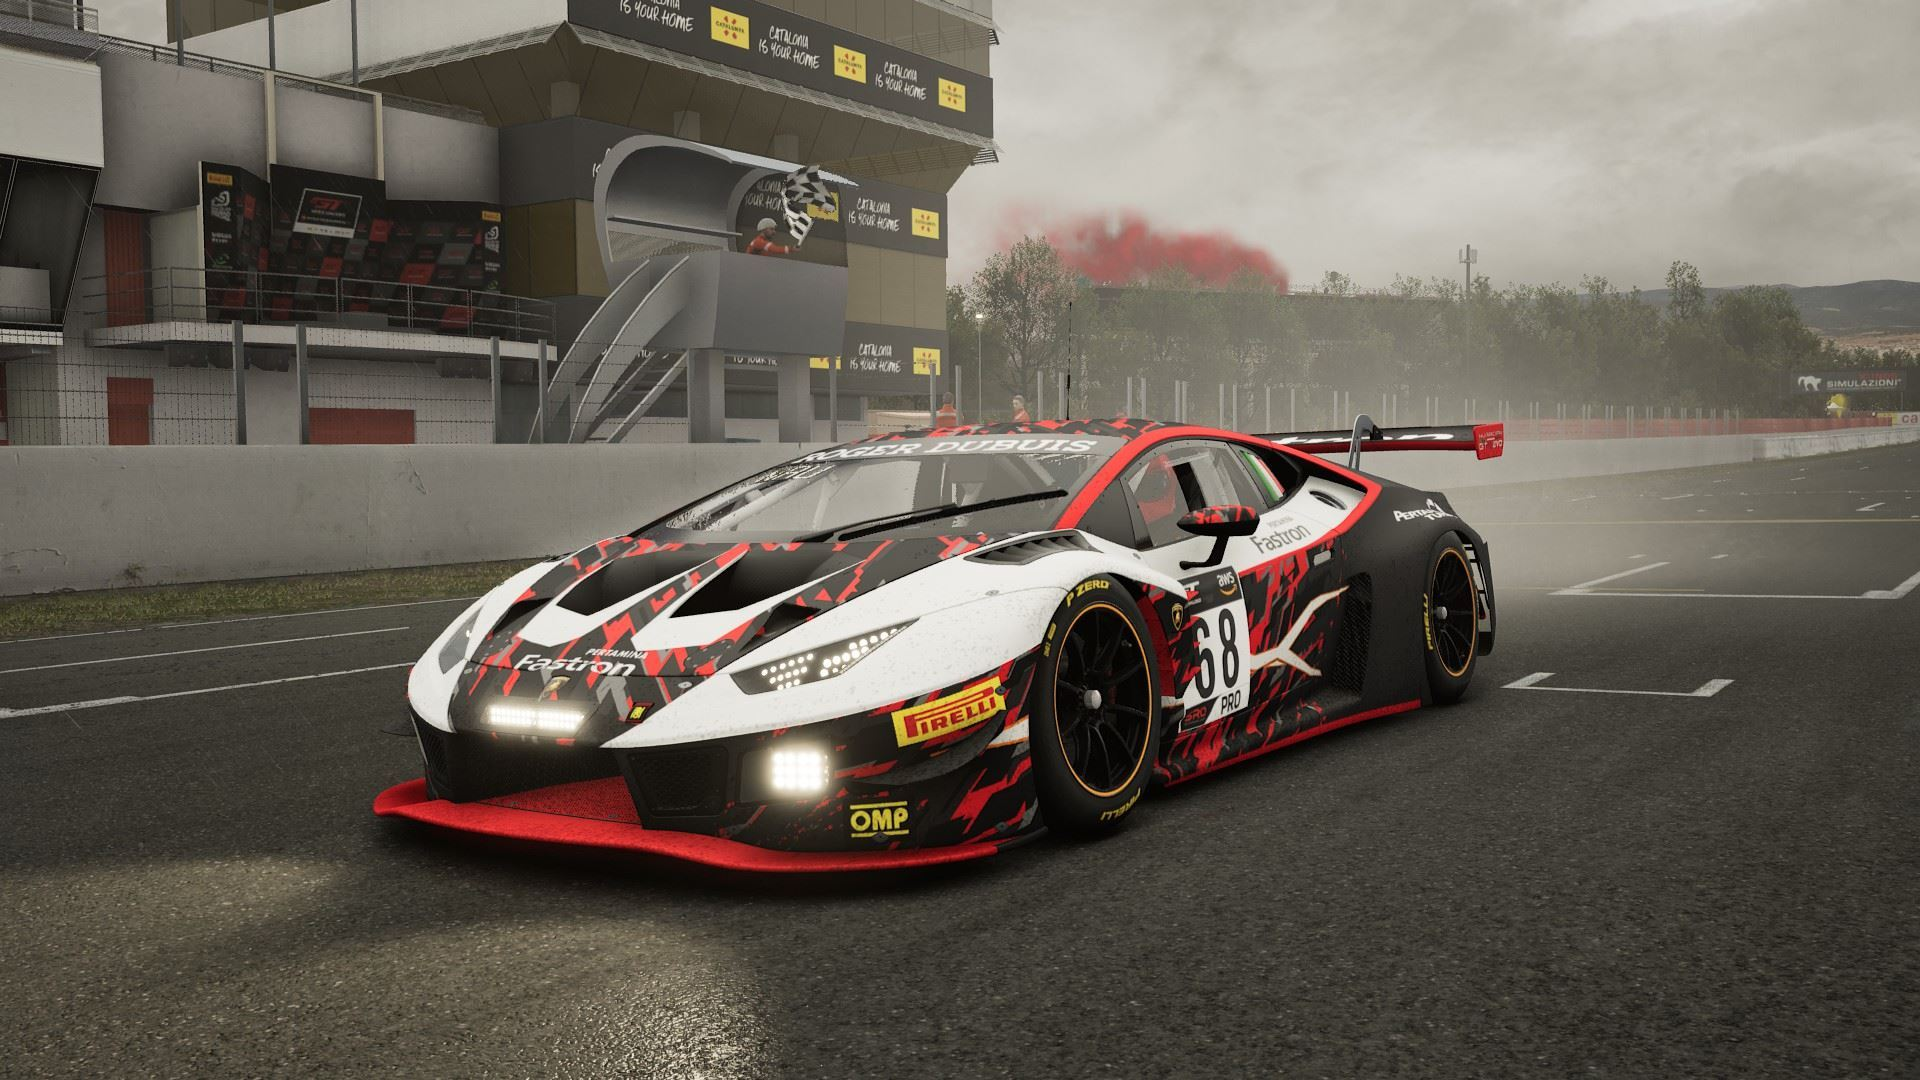 Lamborghini eSports: Nils Naujoks Crowned Champion of The Real Race - Image 4